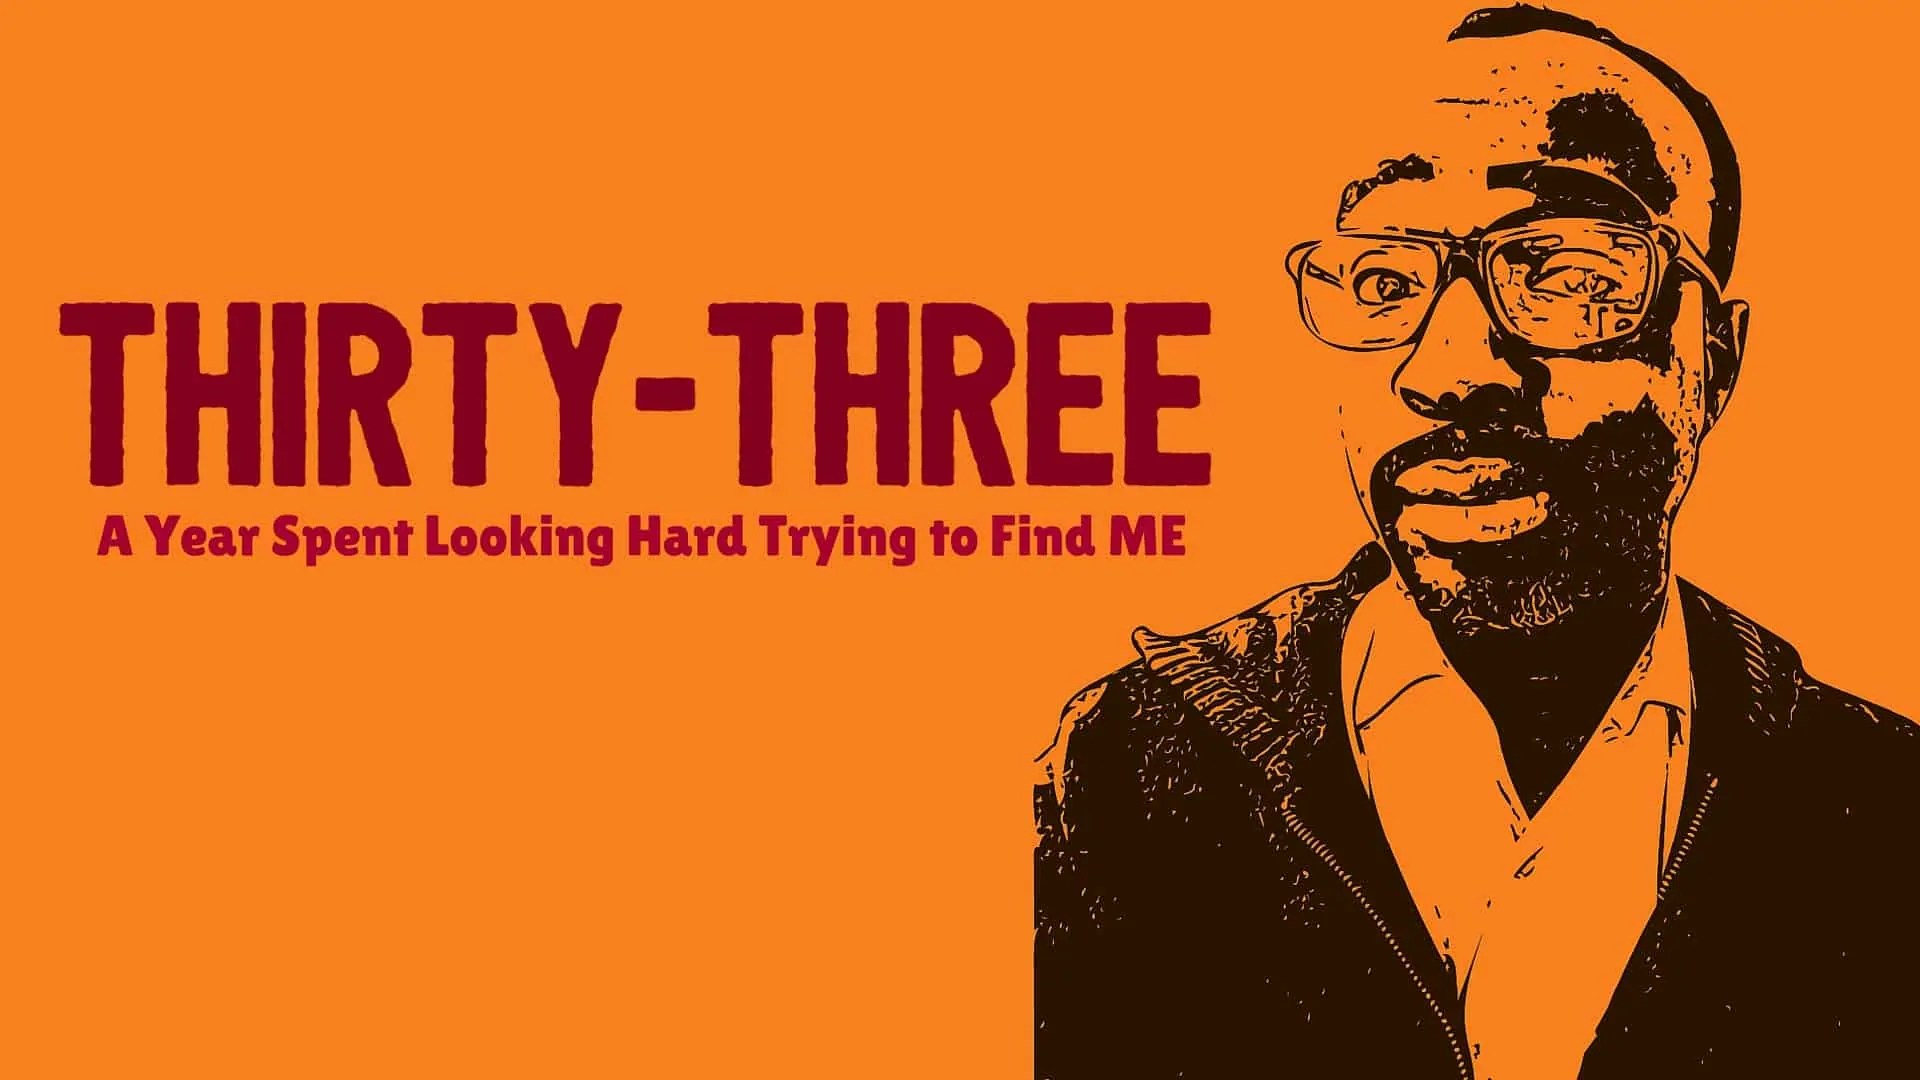 Thirty-Three- A Year Spent Looking Hard Trying to Find ME. (Featured Image)